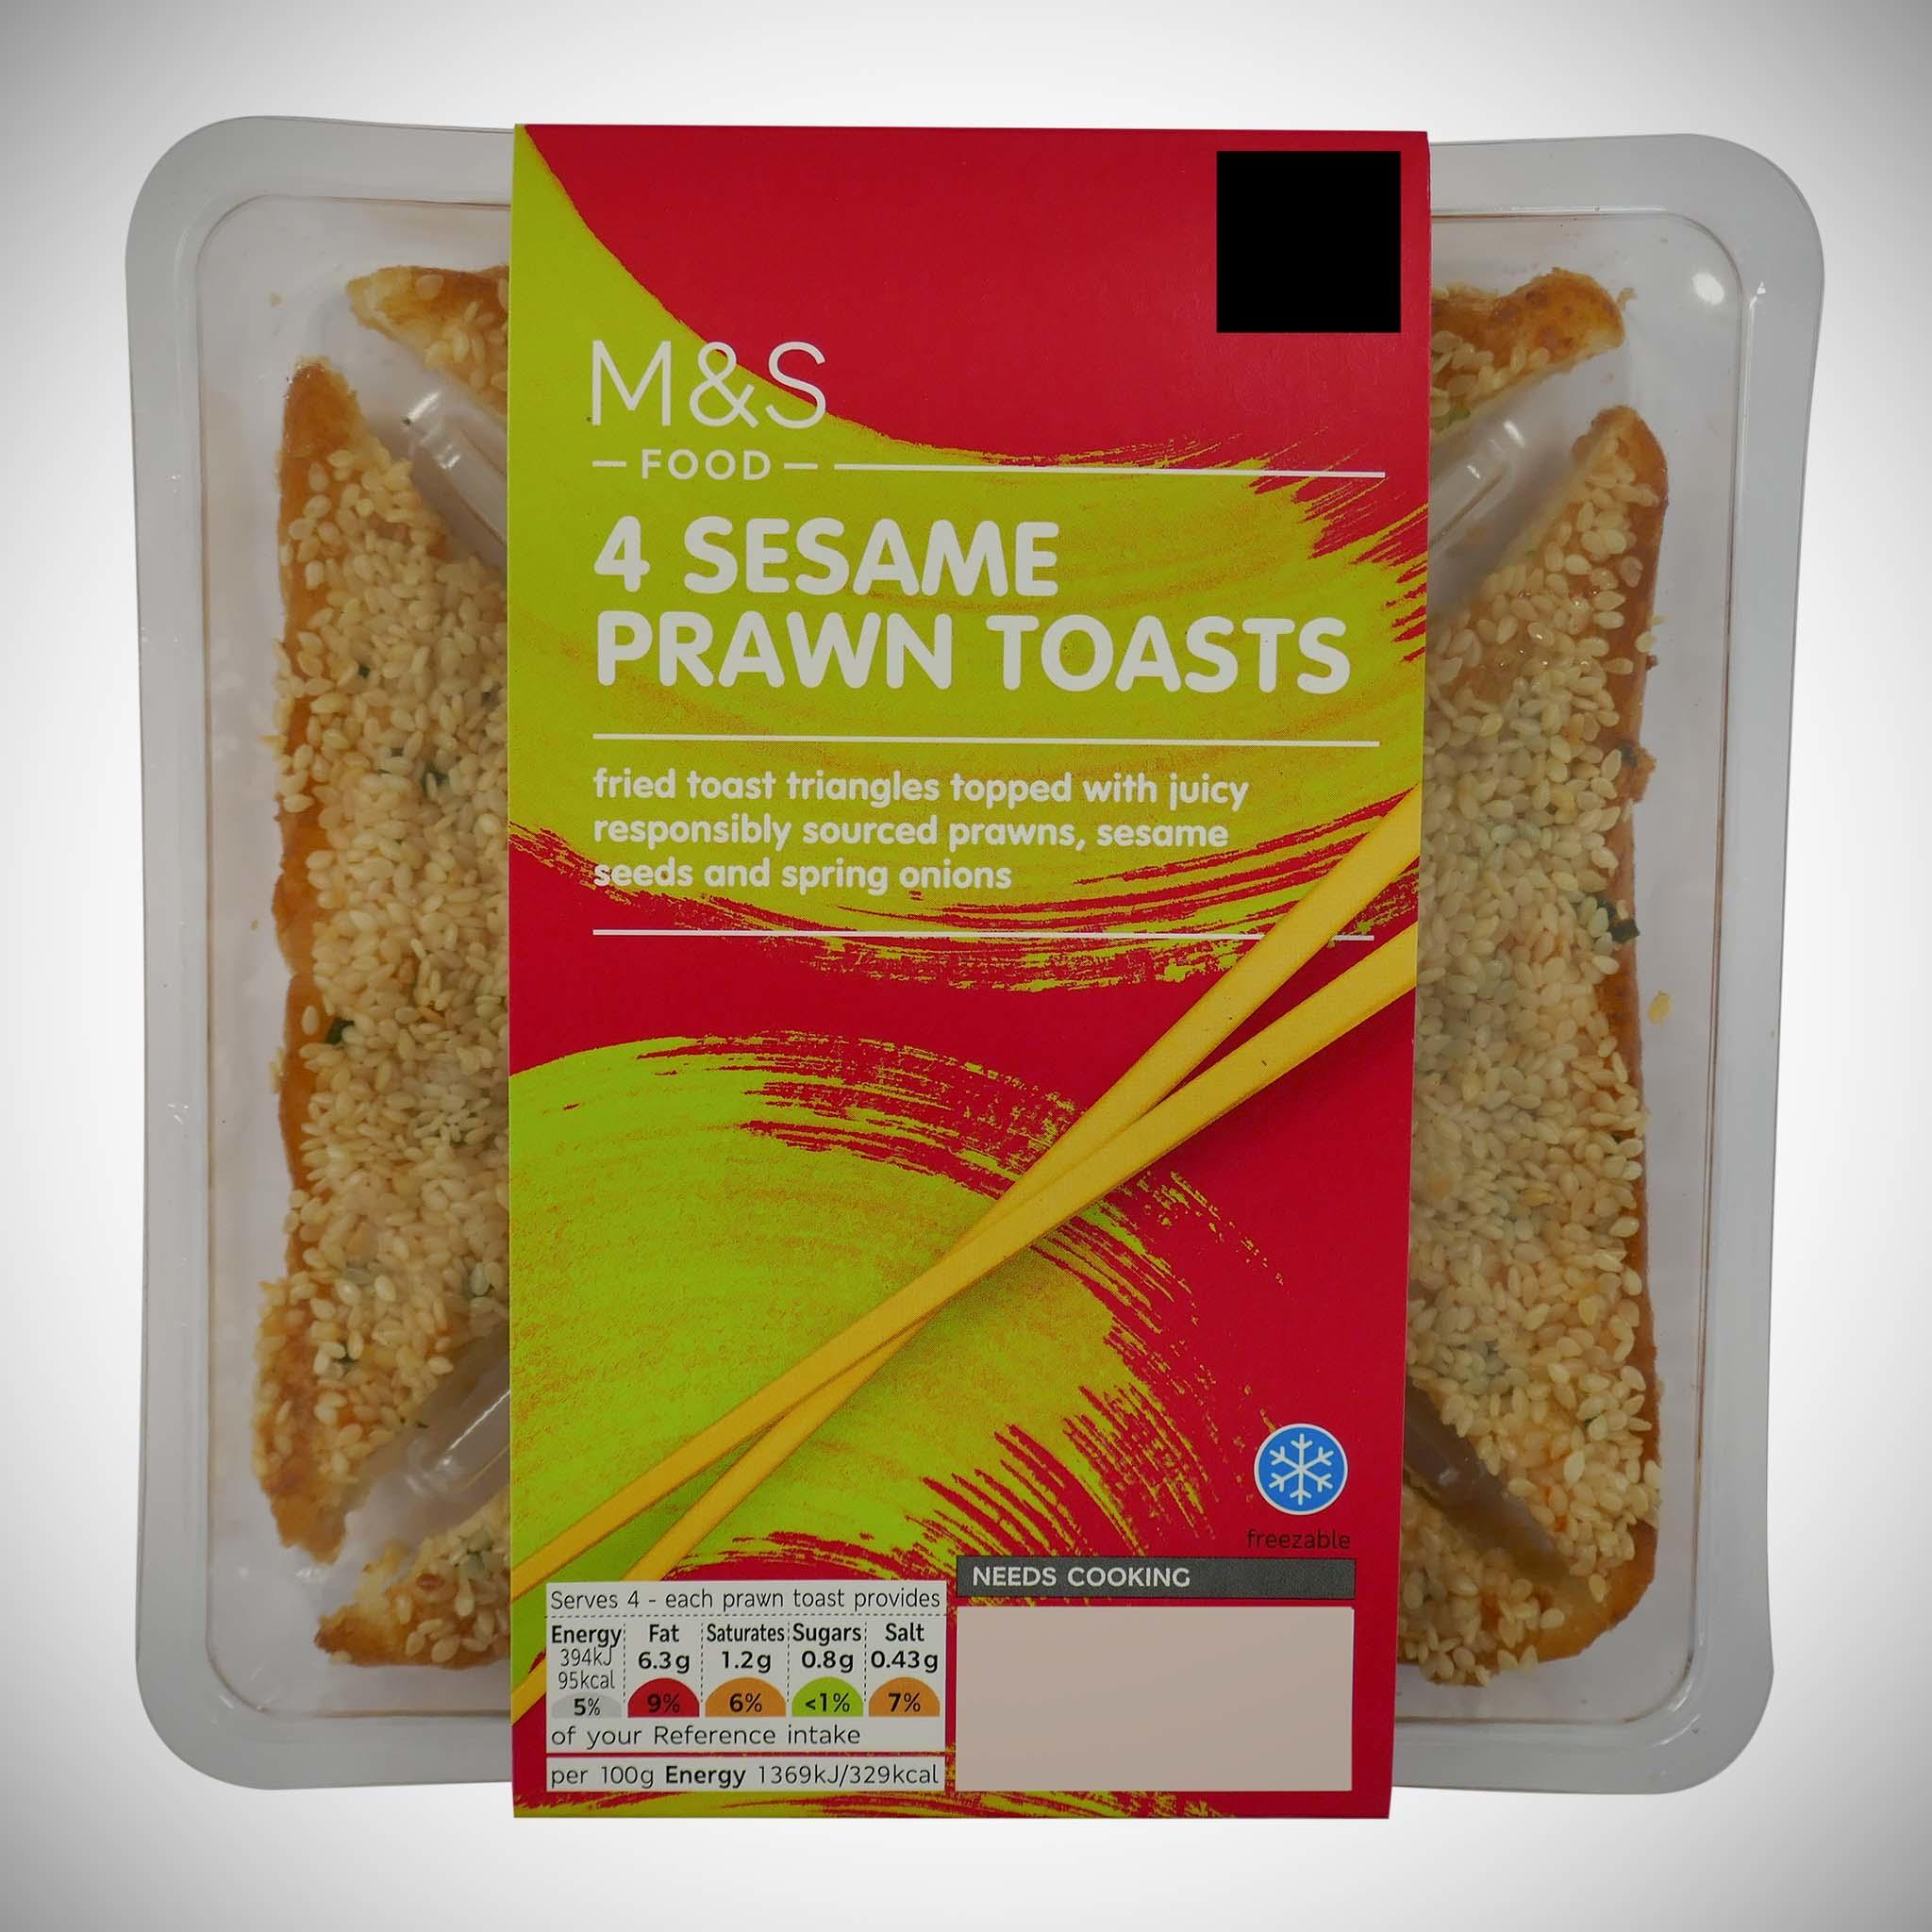 4 Sesame Prawn Toasted Triangles